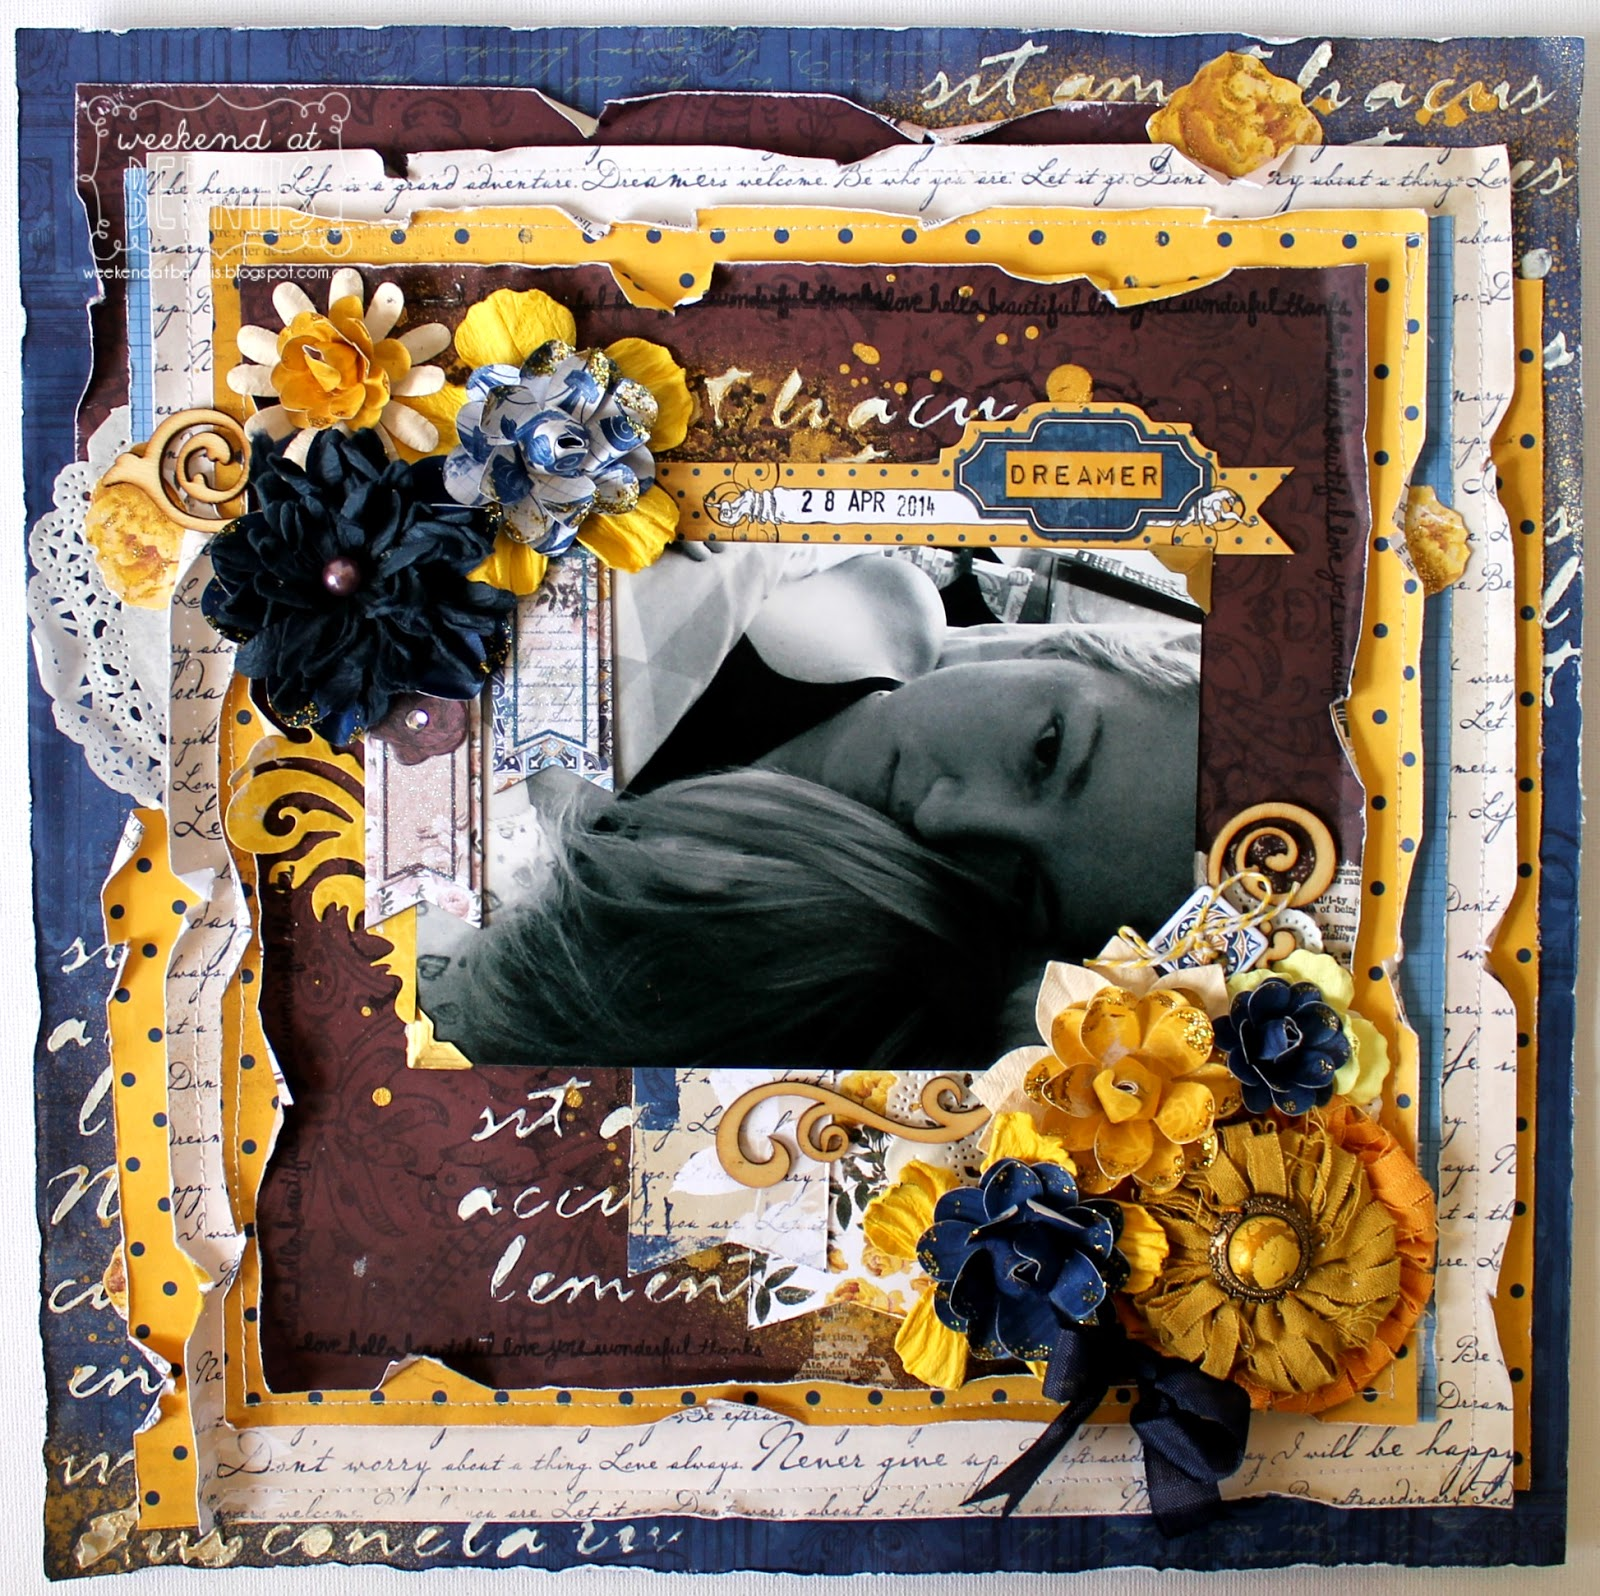 Dreamer layout by Bernii Miller using the Rose Cafe collection by BoBunny.